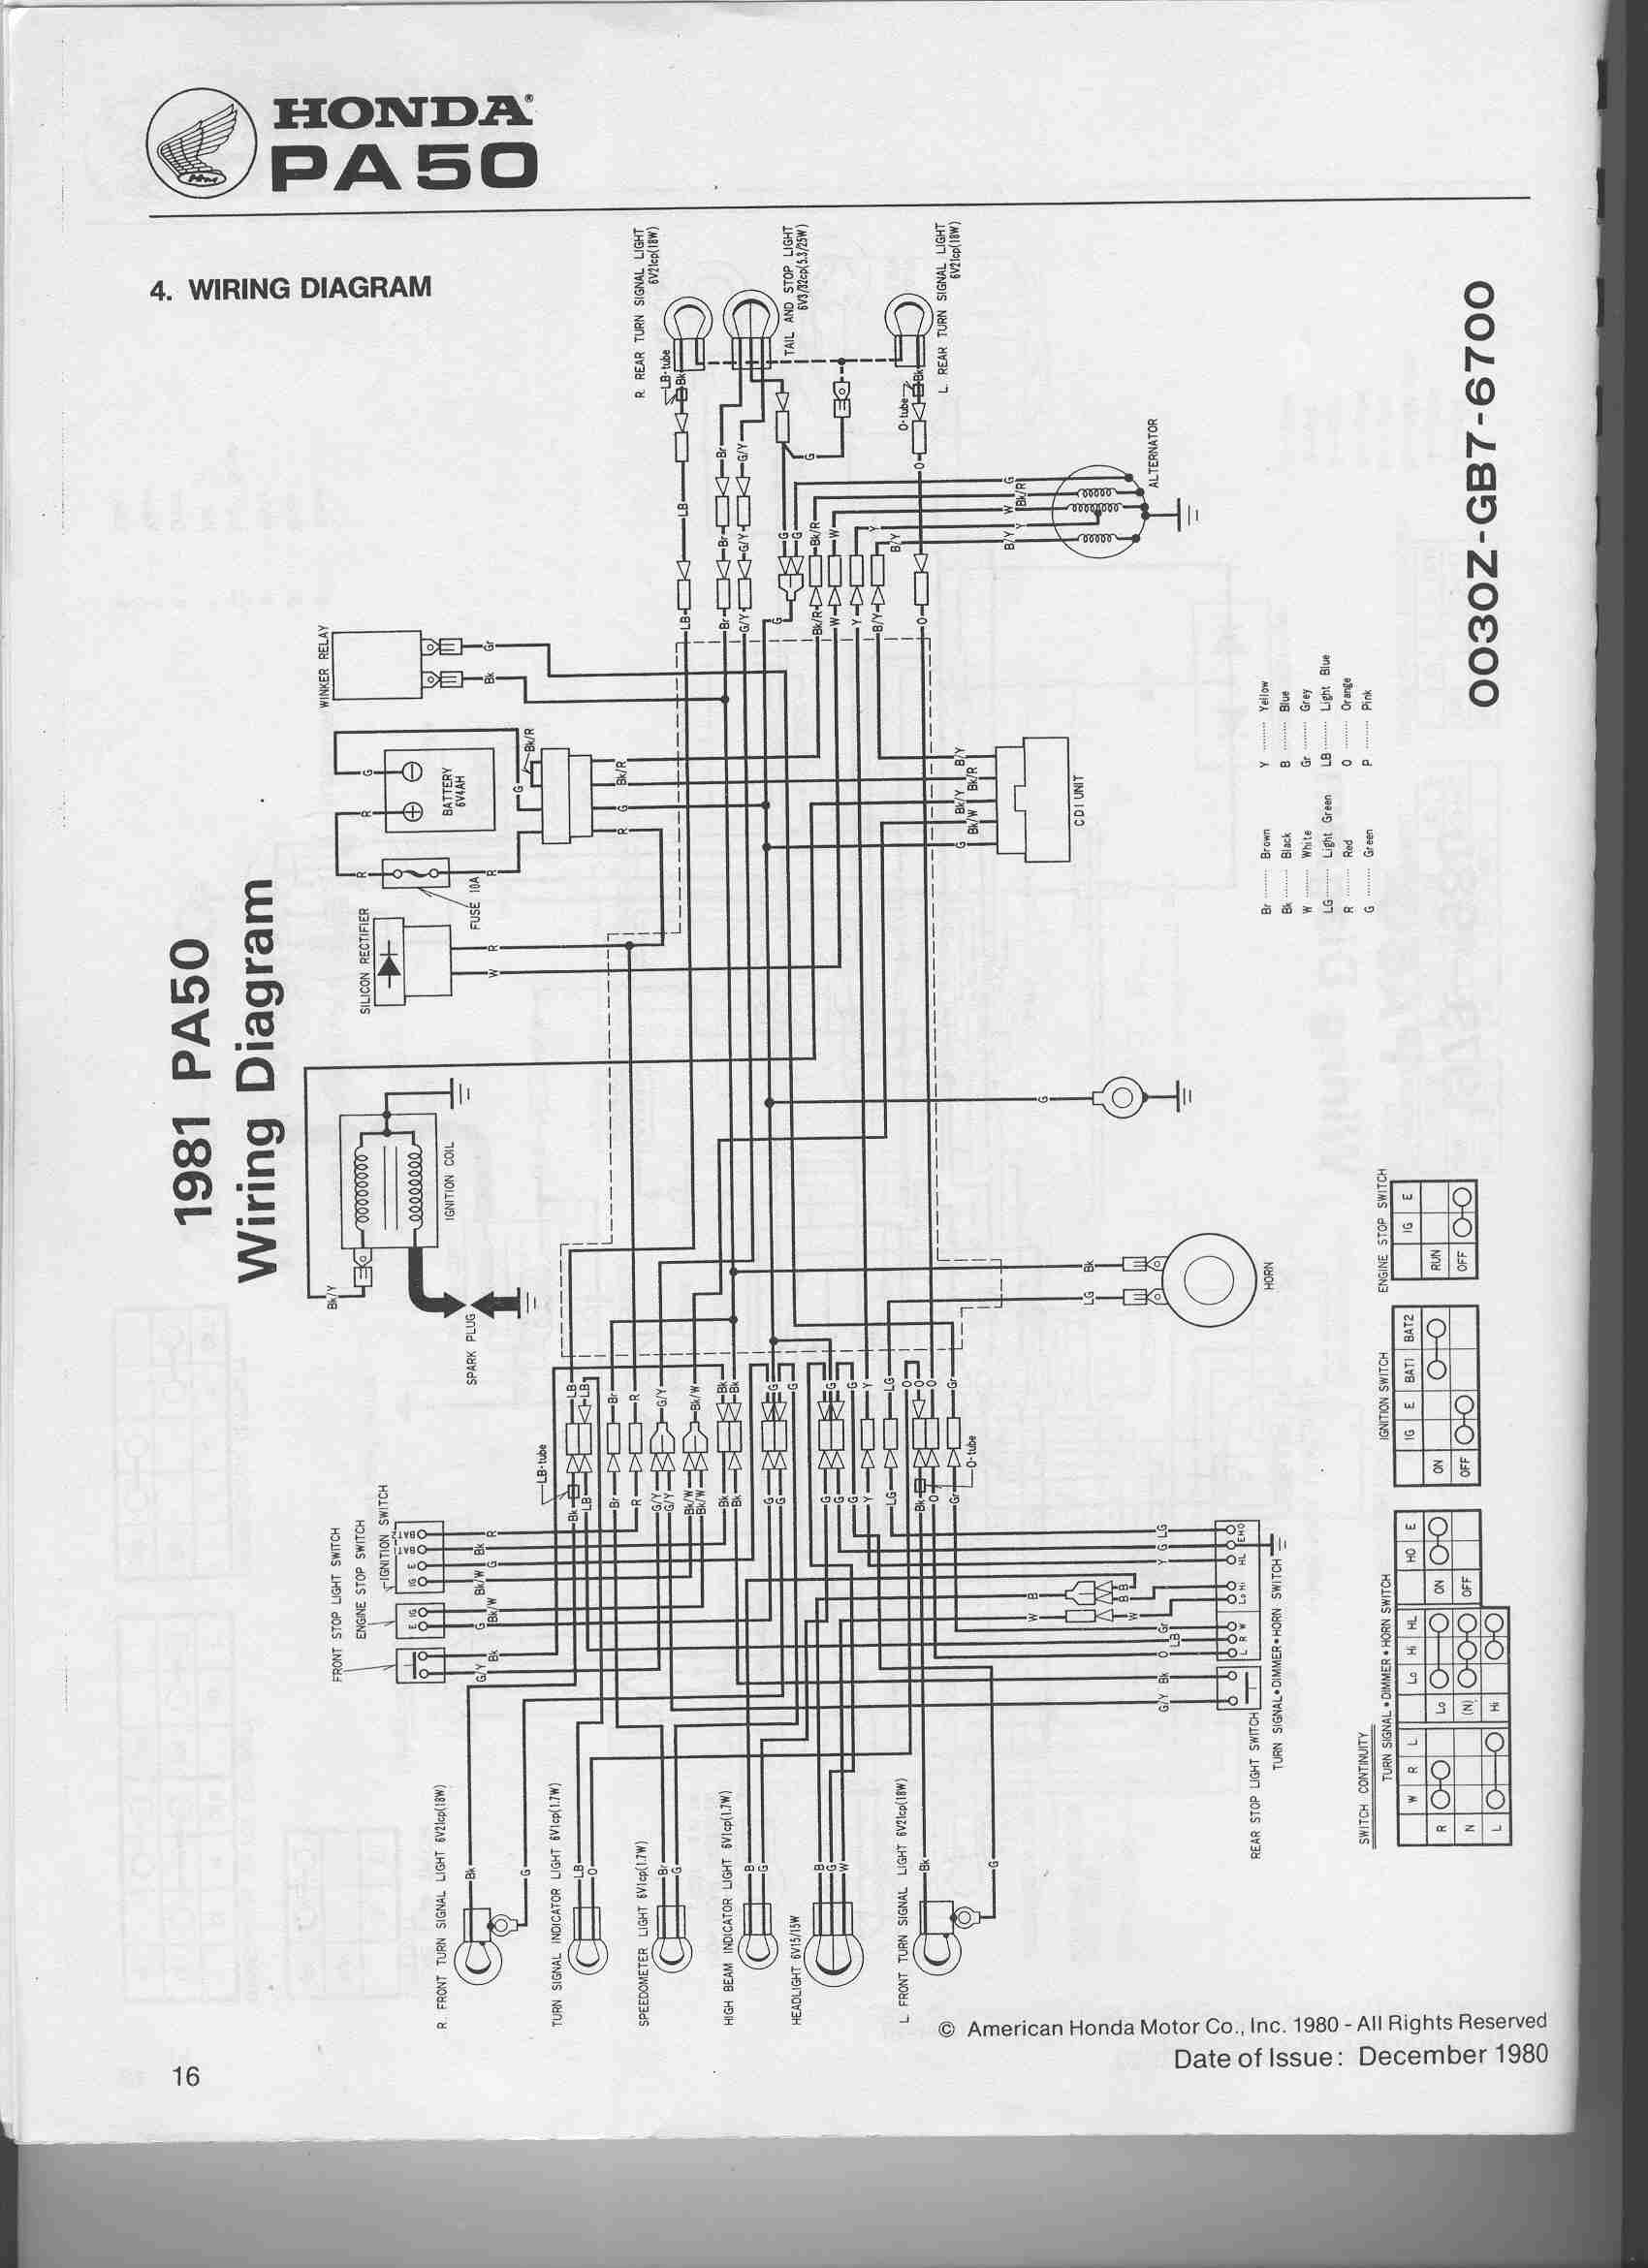 Re: 1983 honda nu50 battery wiring — Moped Army